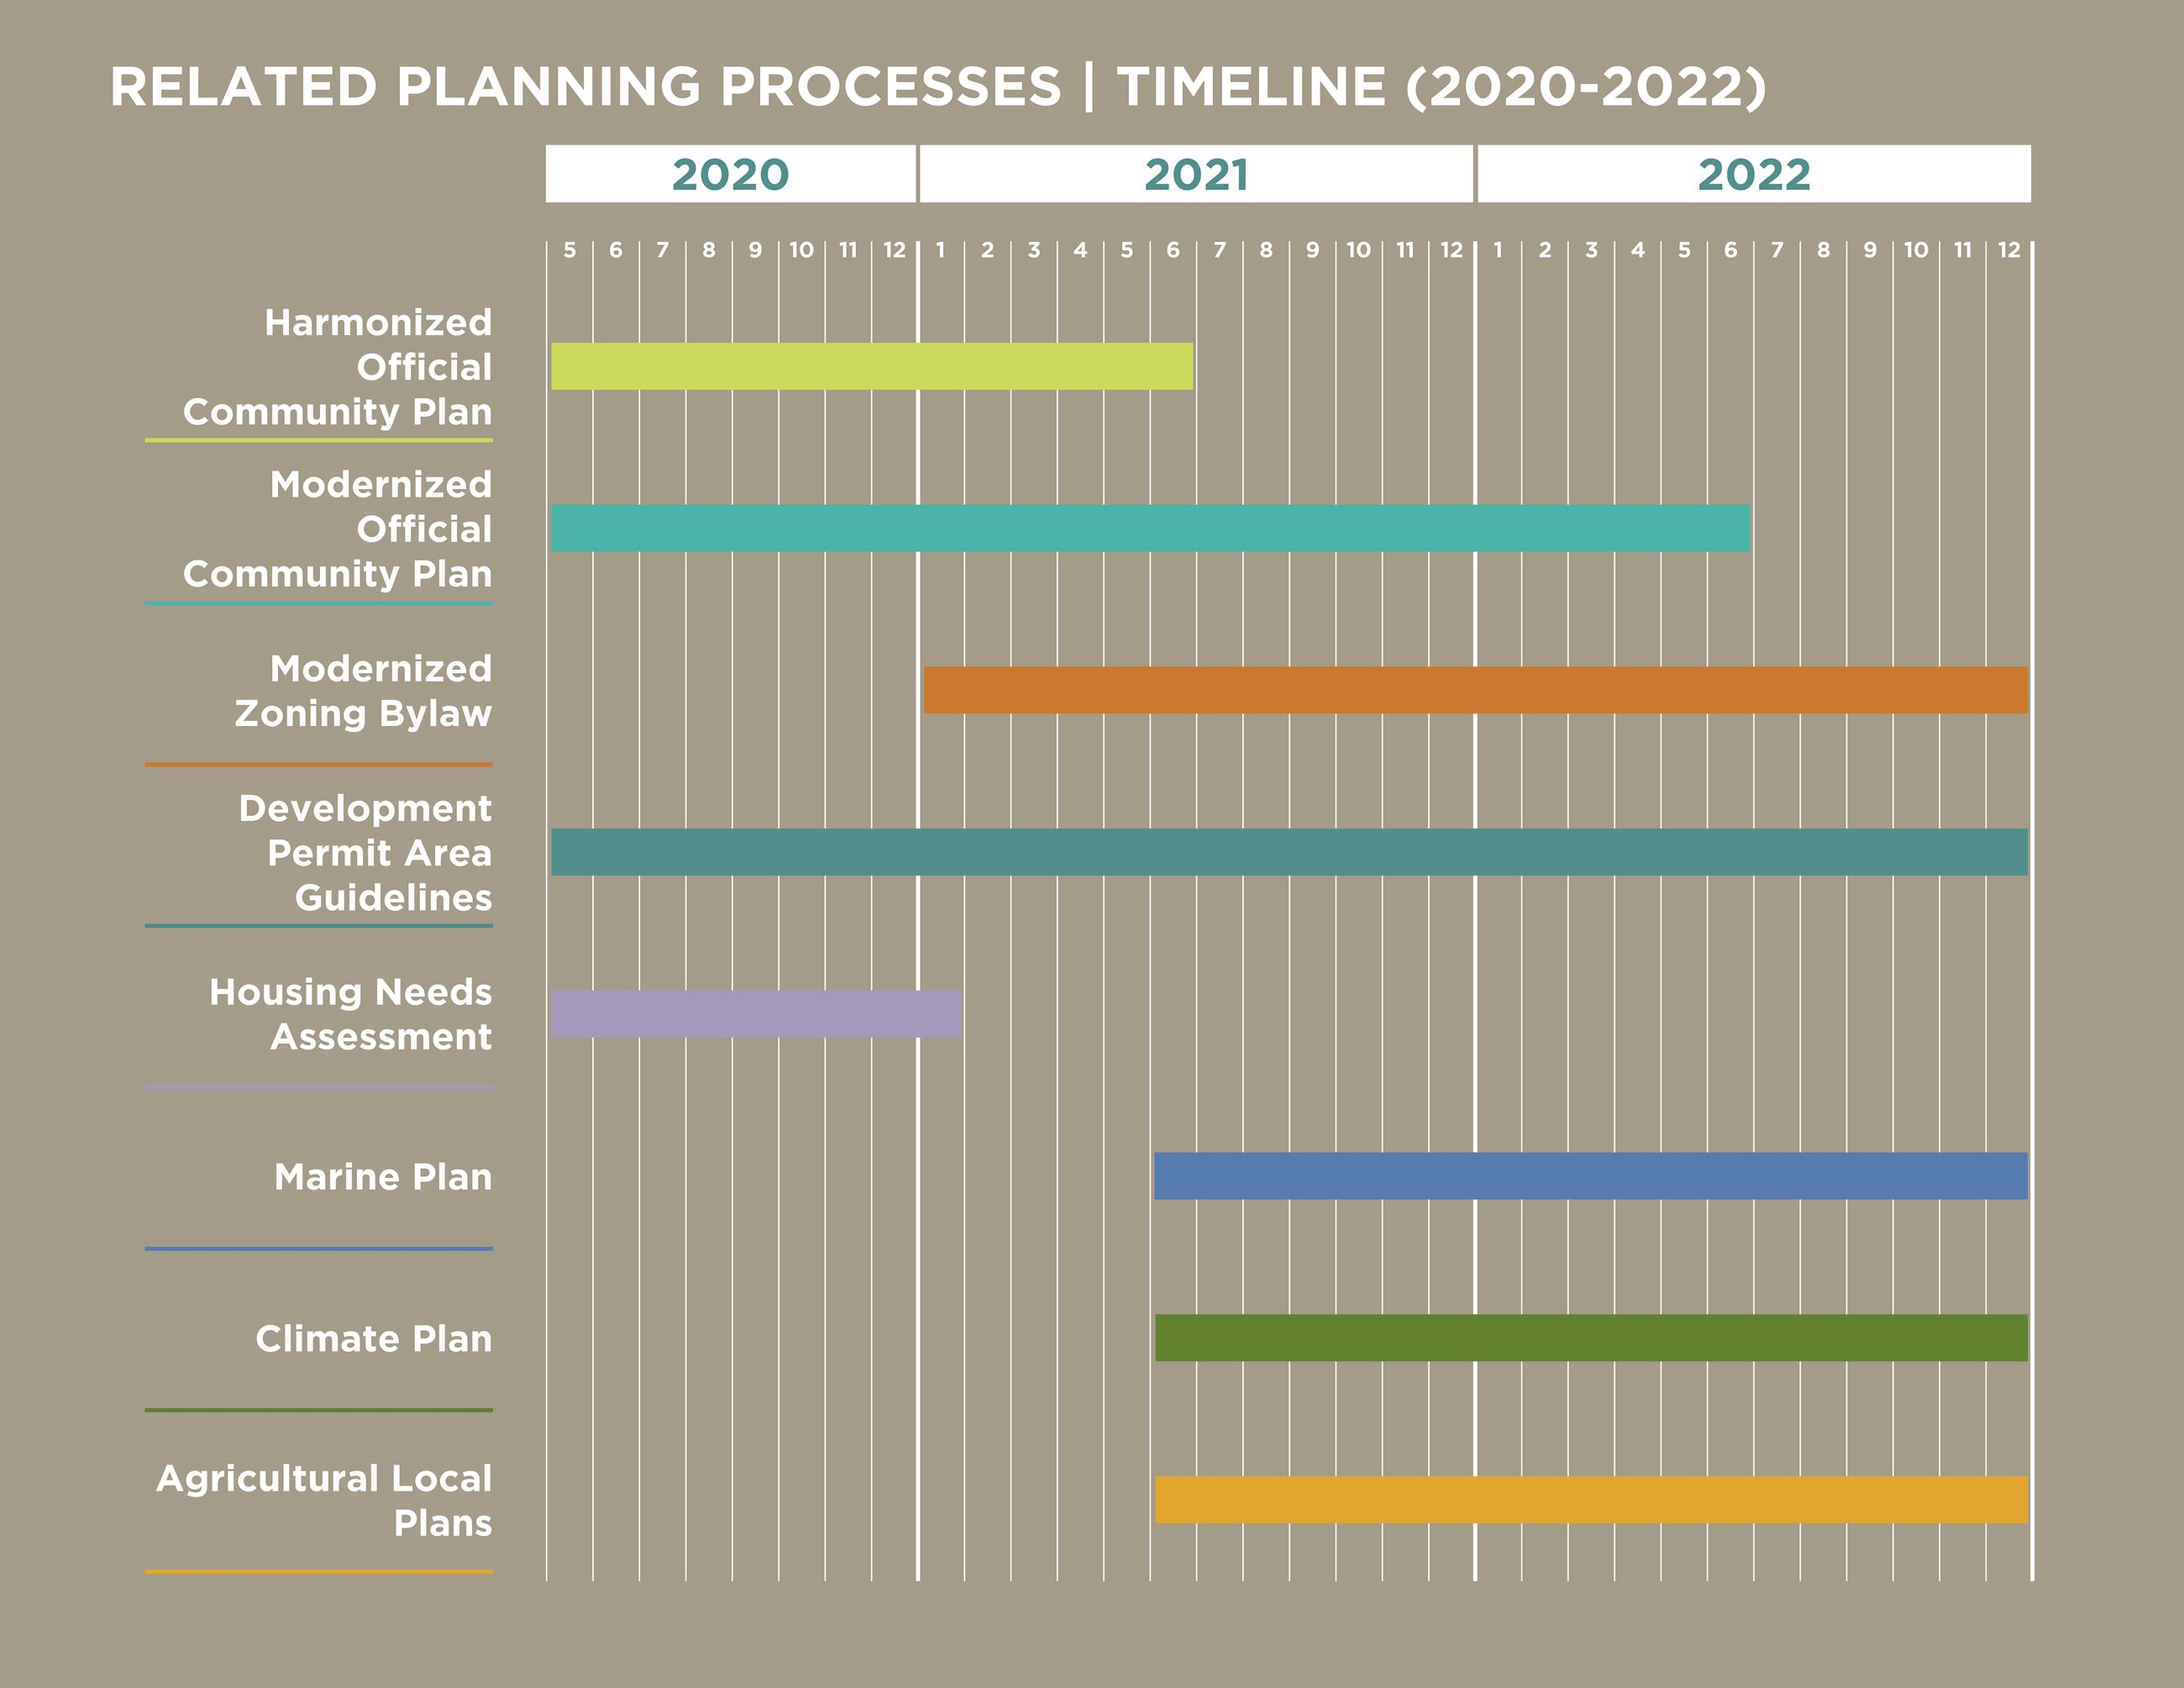 Related Planning Process Timeline